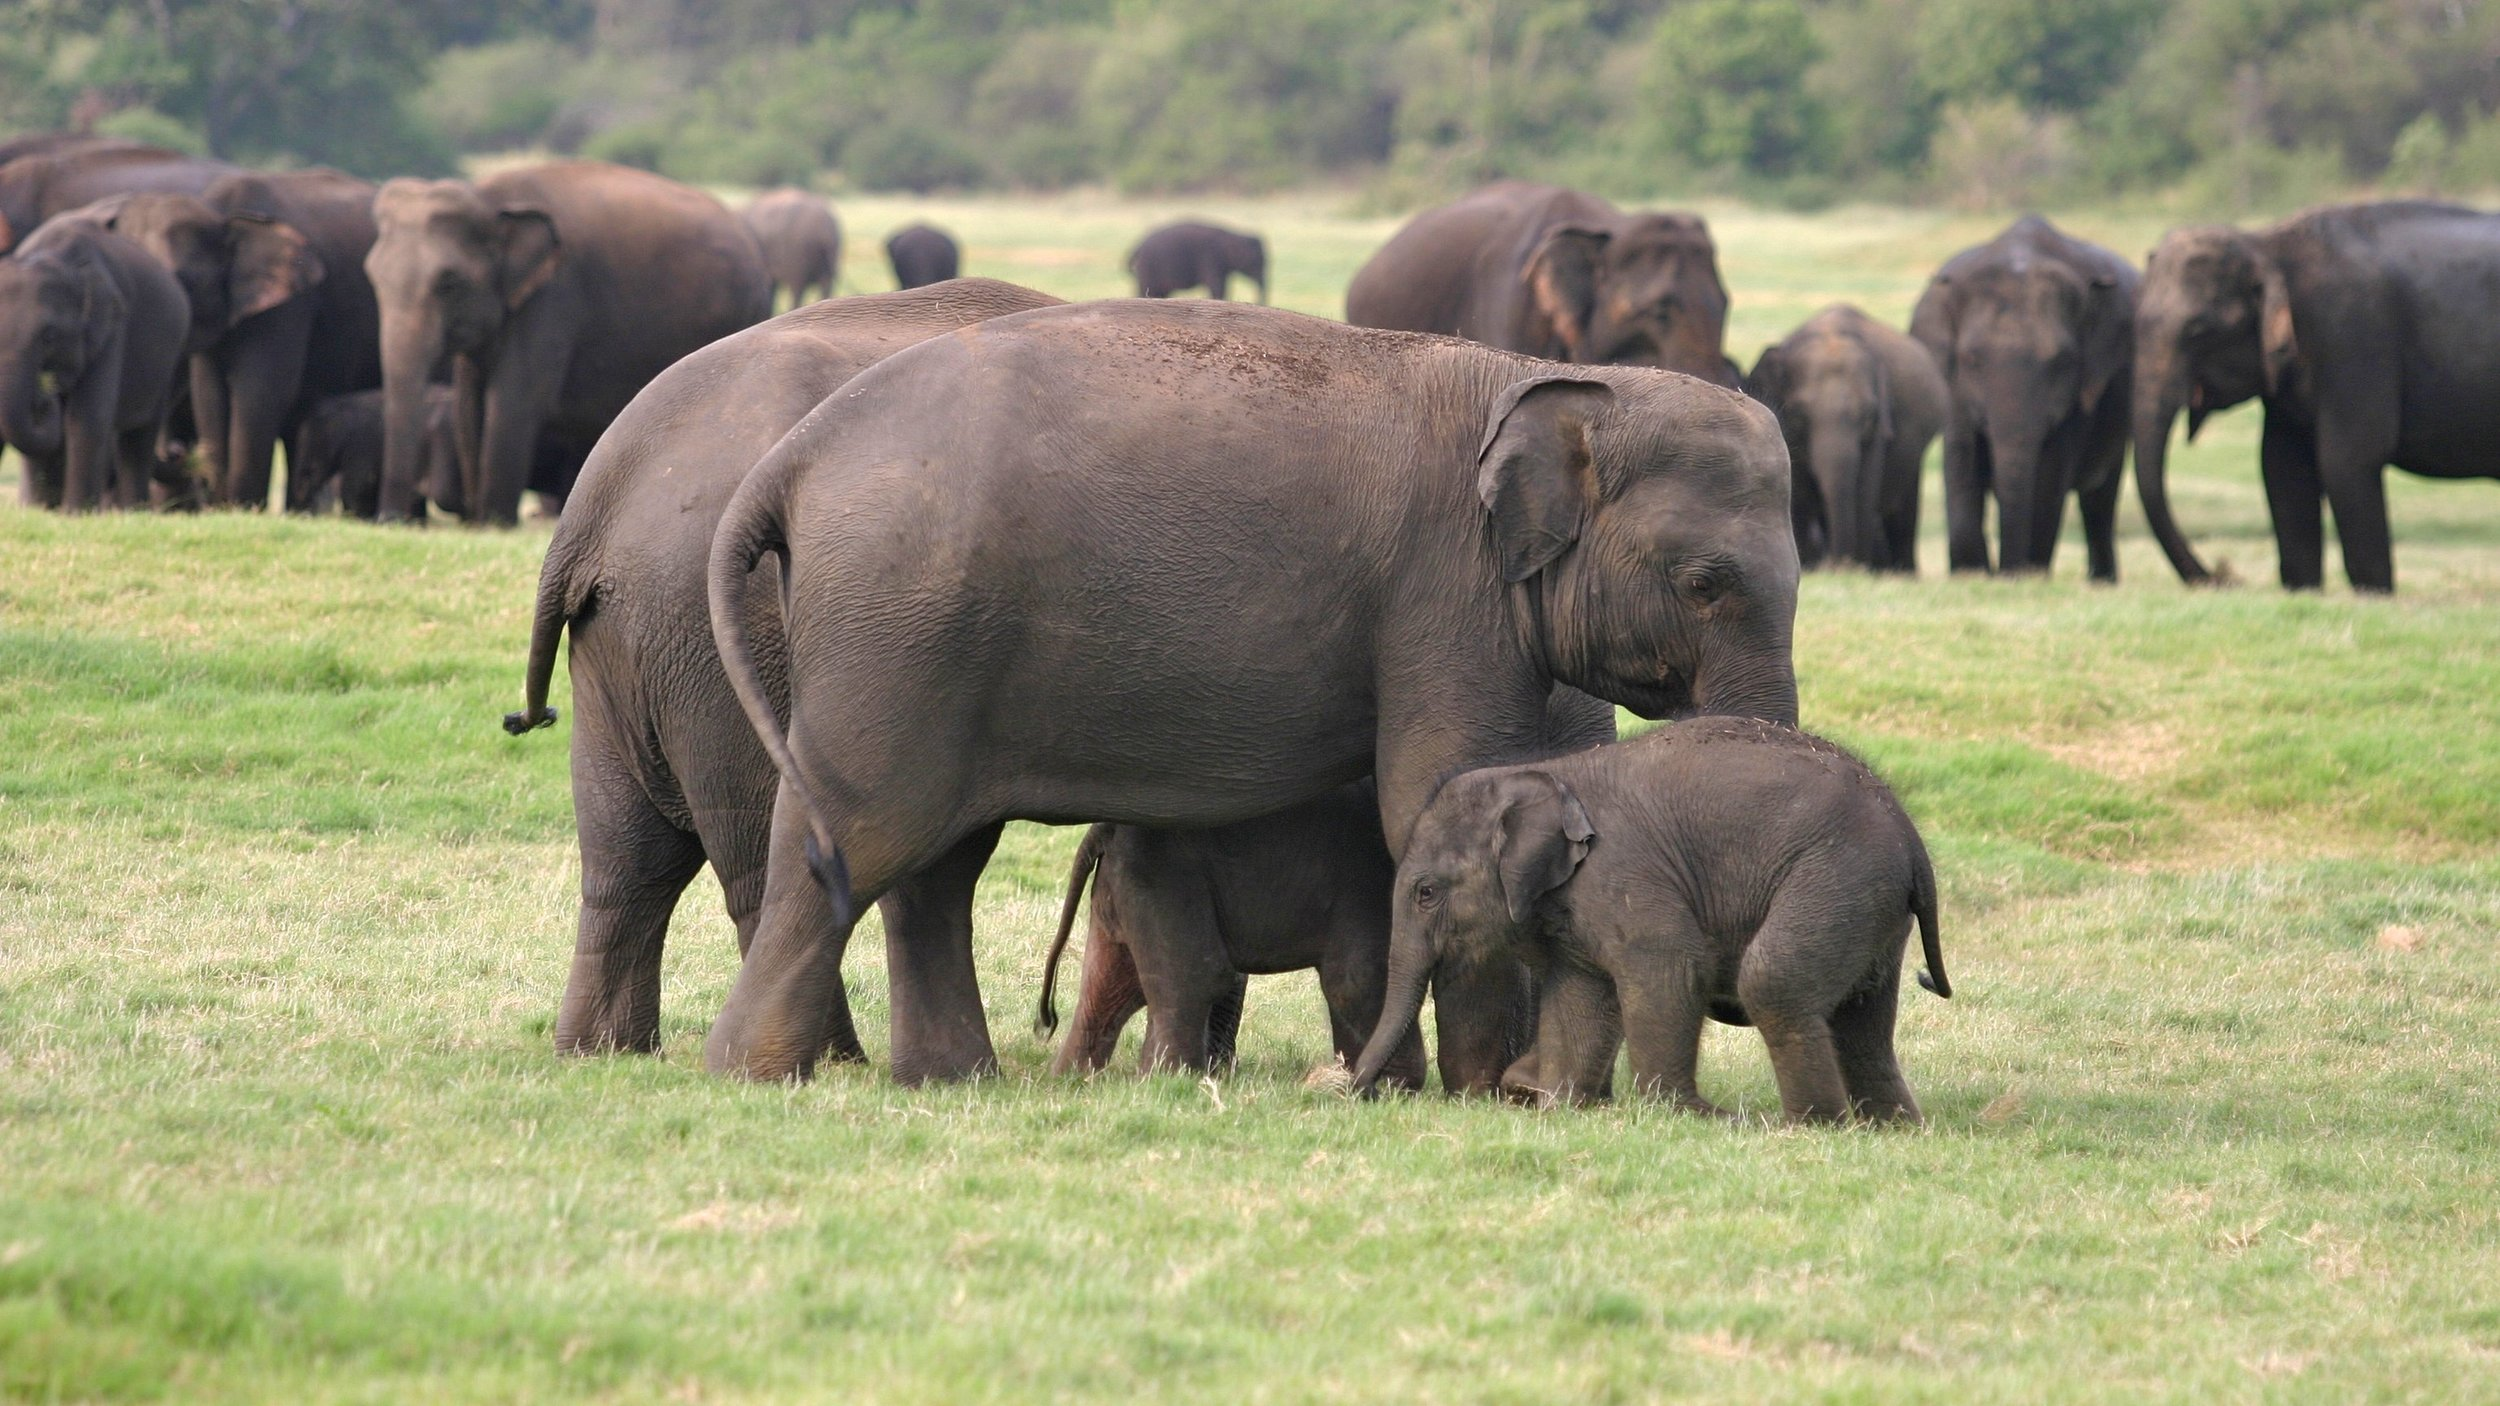 Experience elephants in the wild